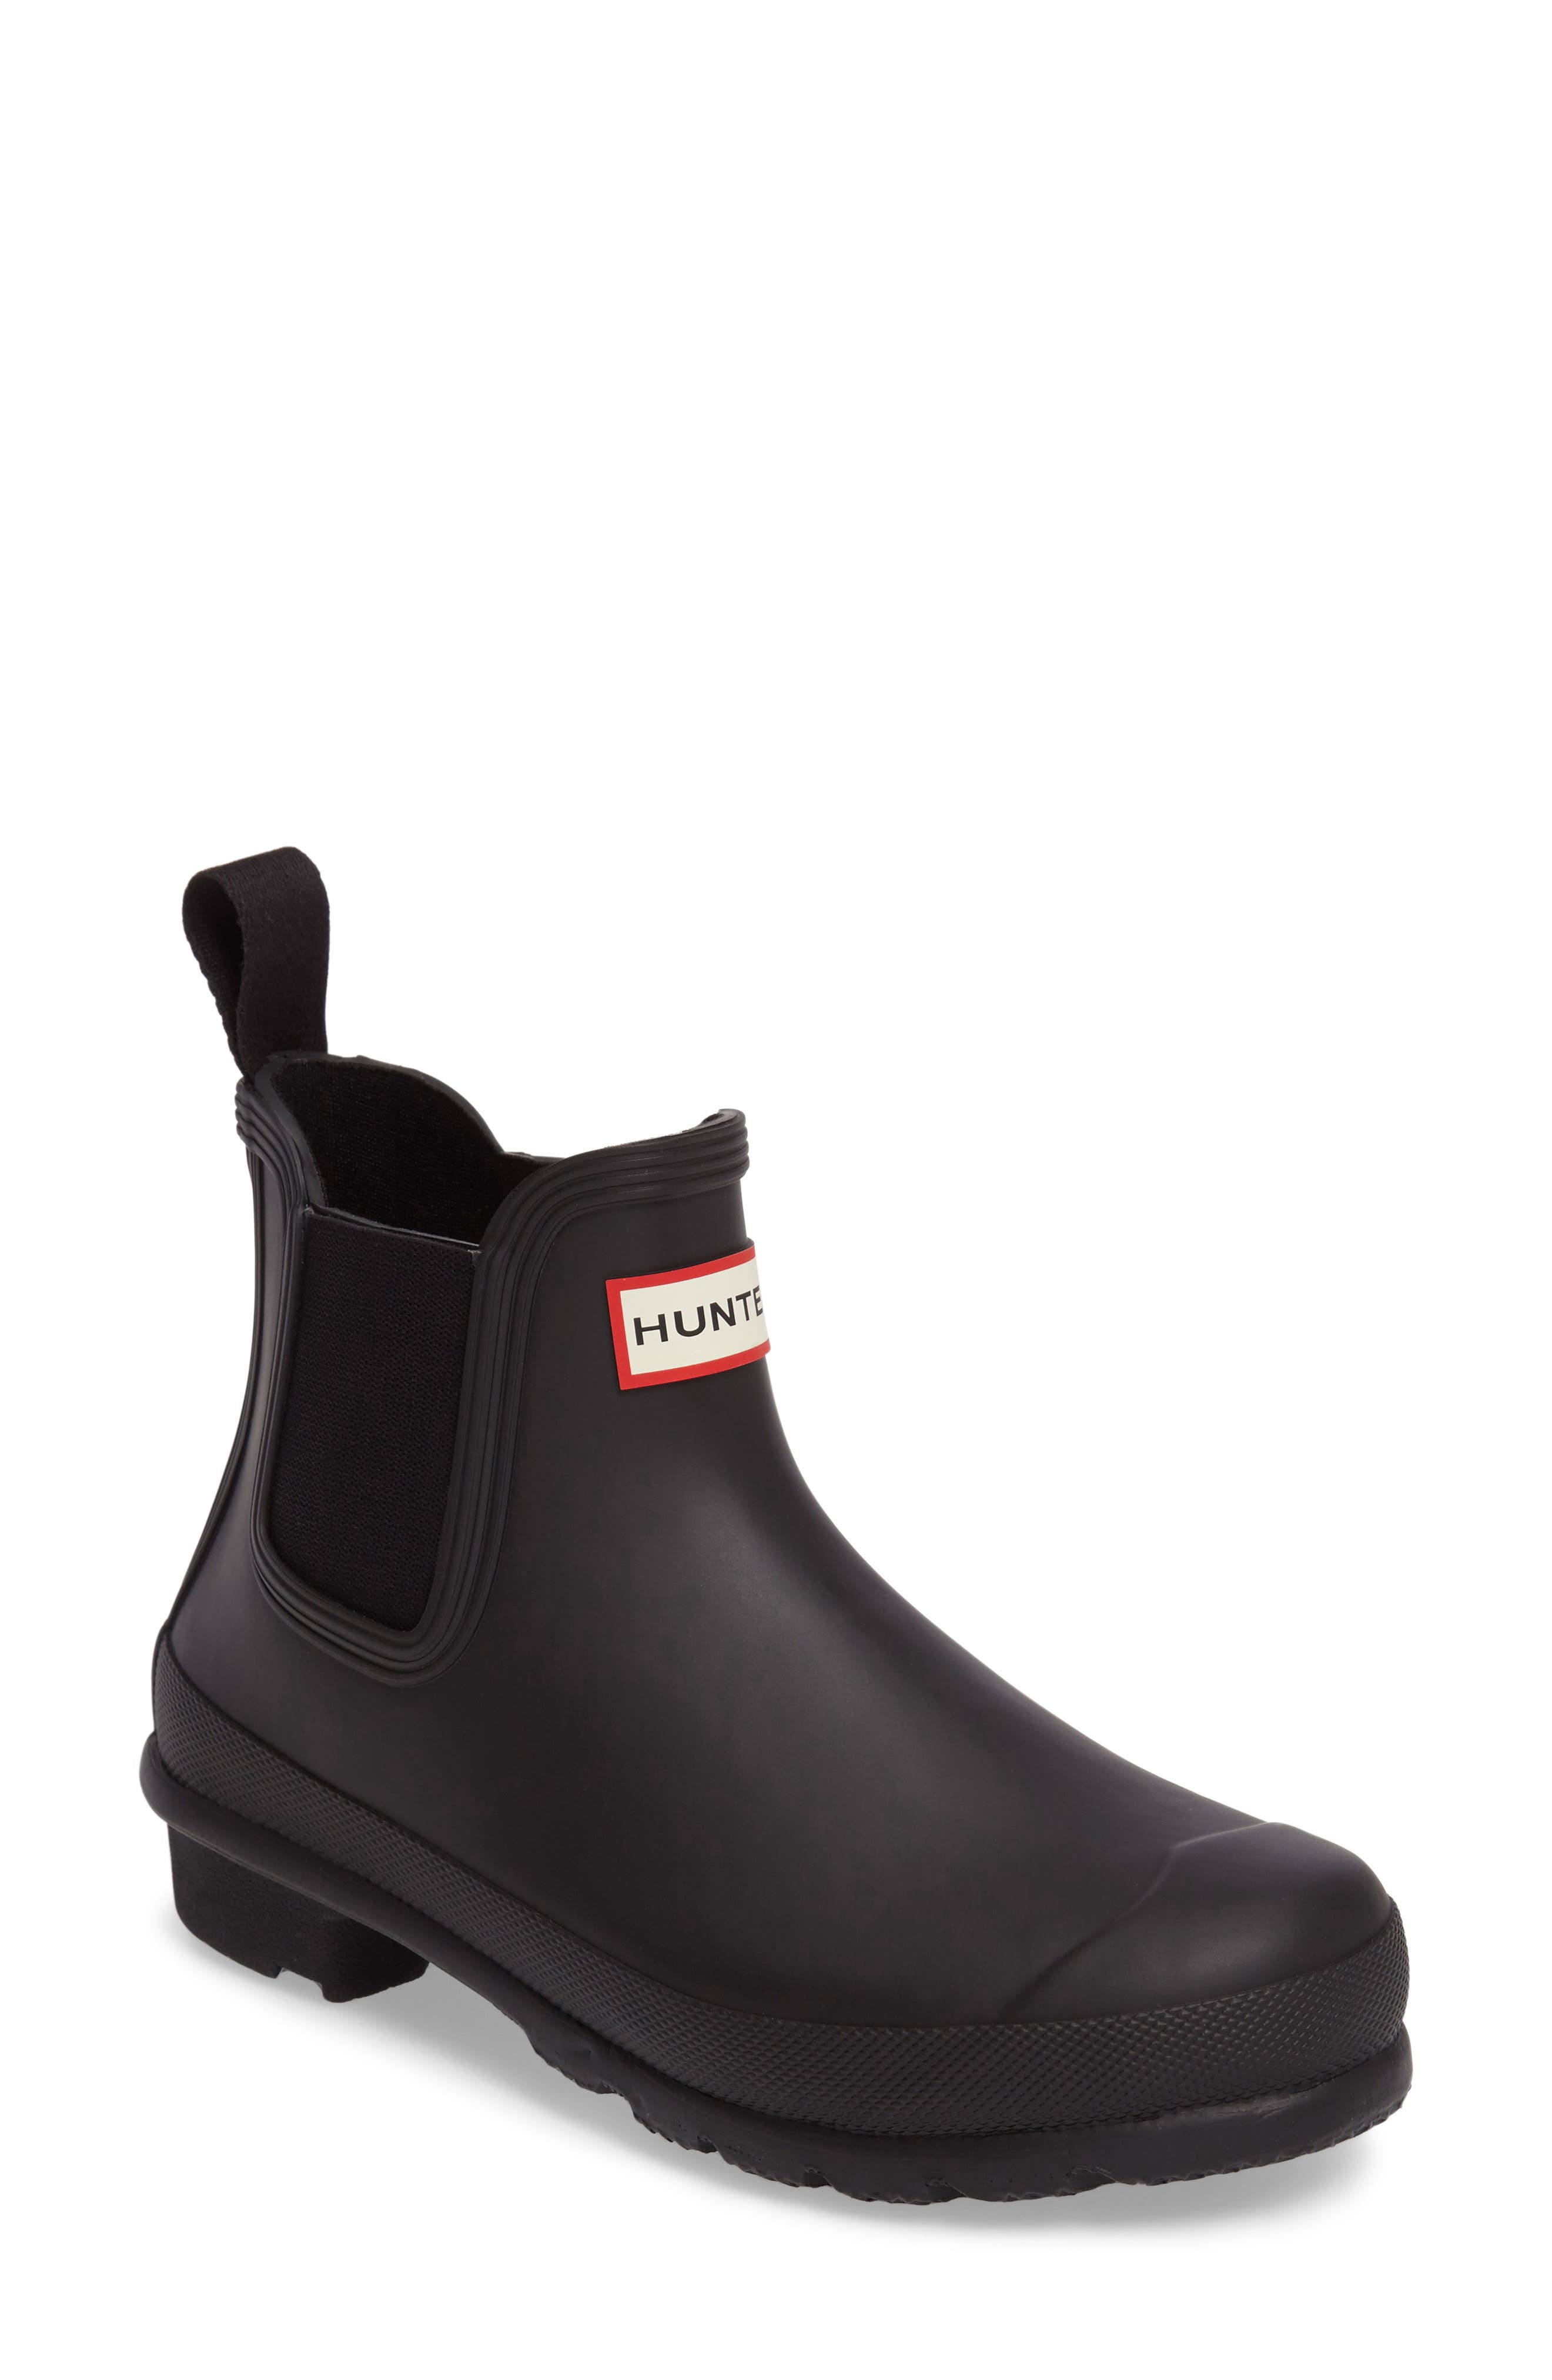 Original Waterproof Chelsea Rain Boot,                         Main,                         color, BLACK MATTE